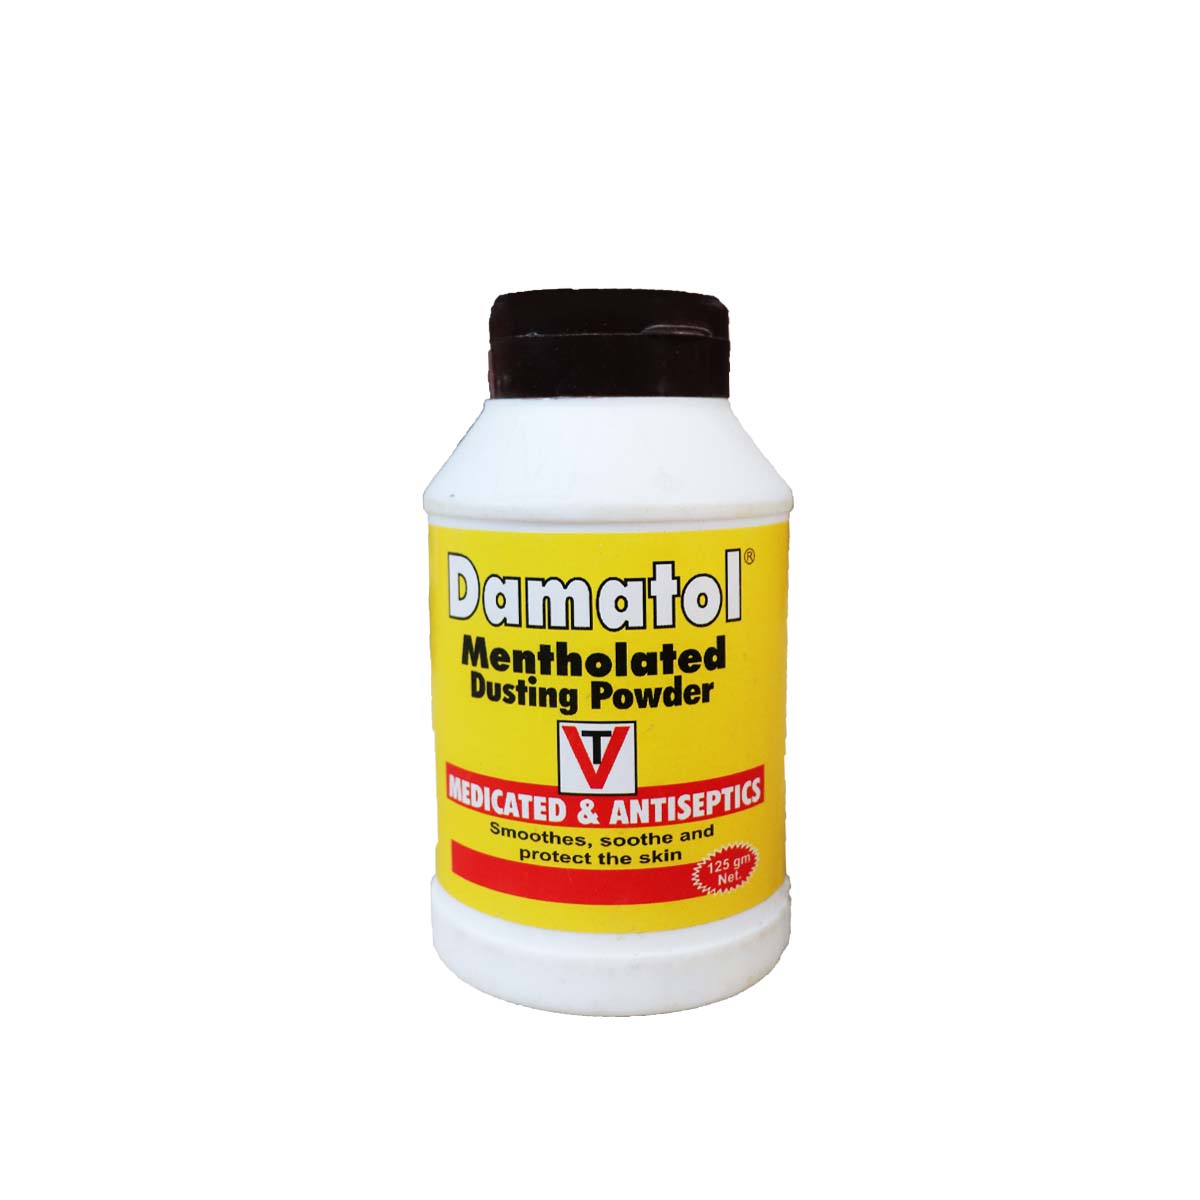 Picture of Damatol Mentholated Dusting Powder 125g